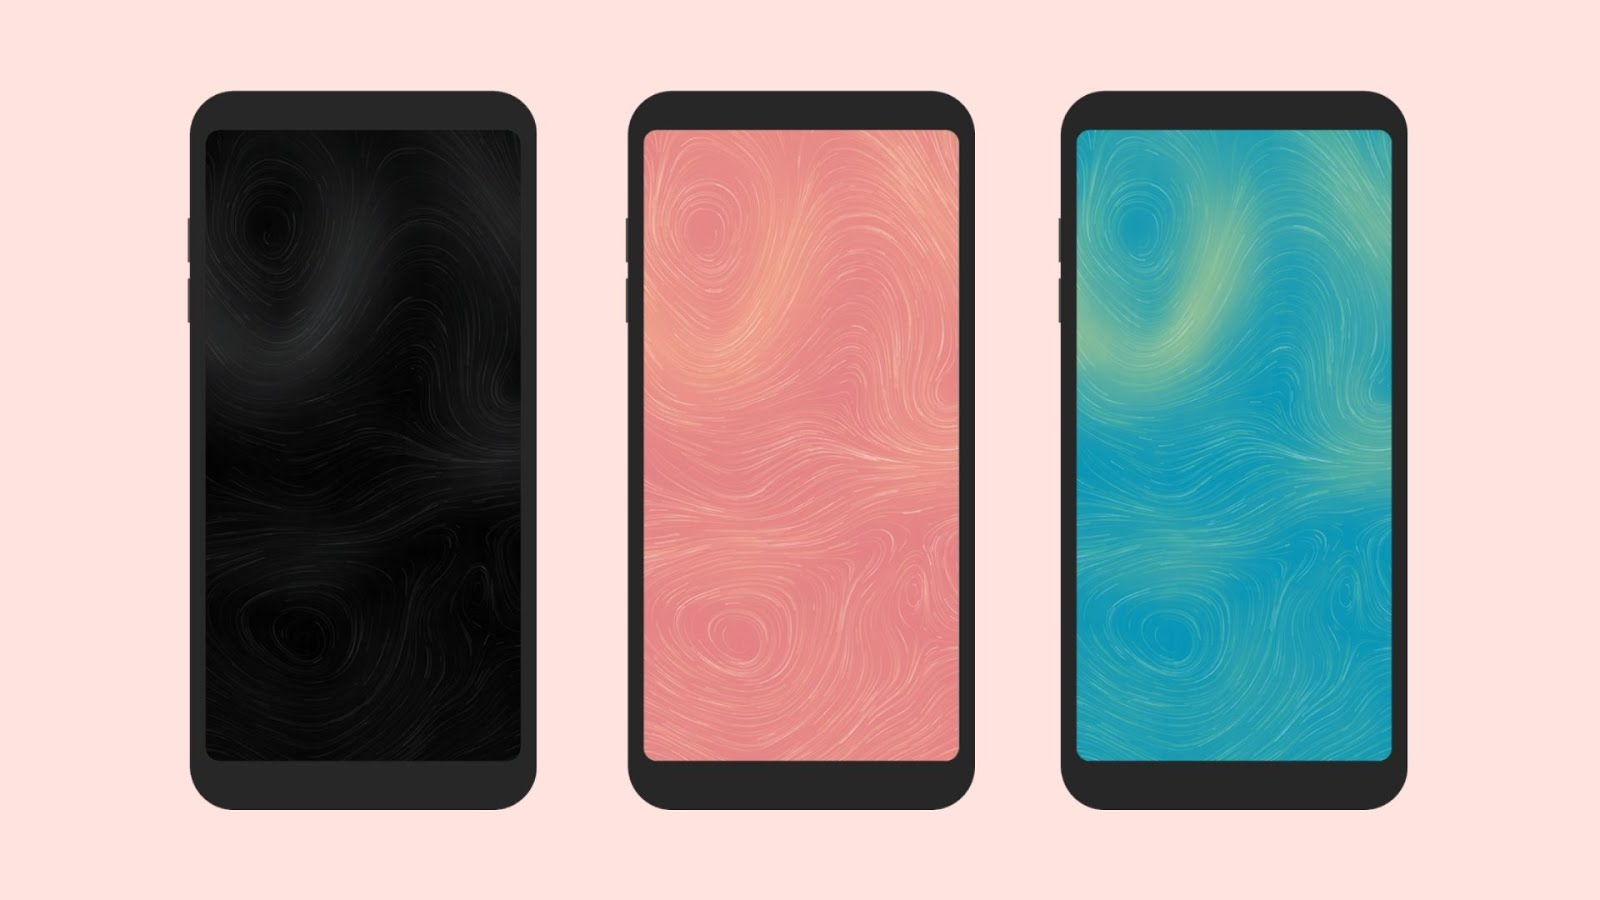 Android Q Stock Wallpapers | Wallpaper Pack #2